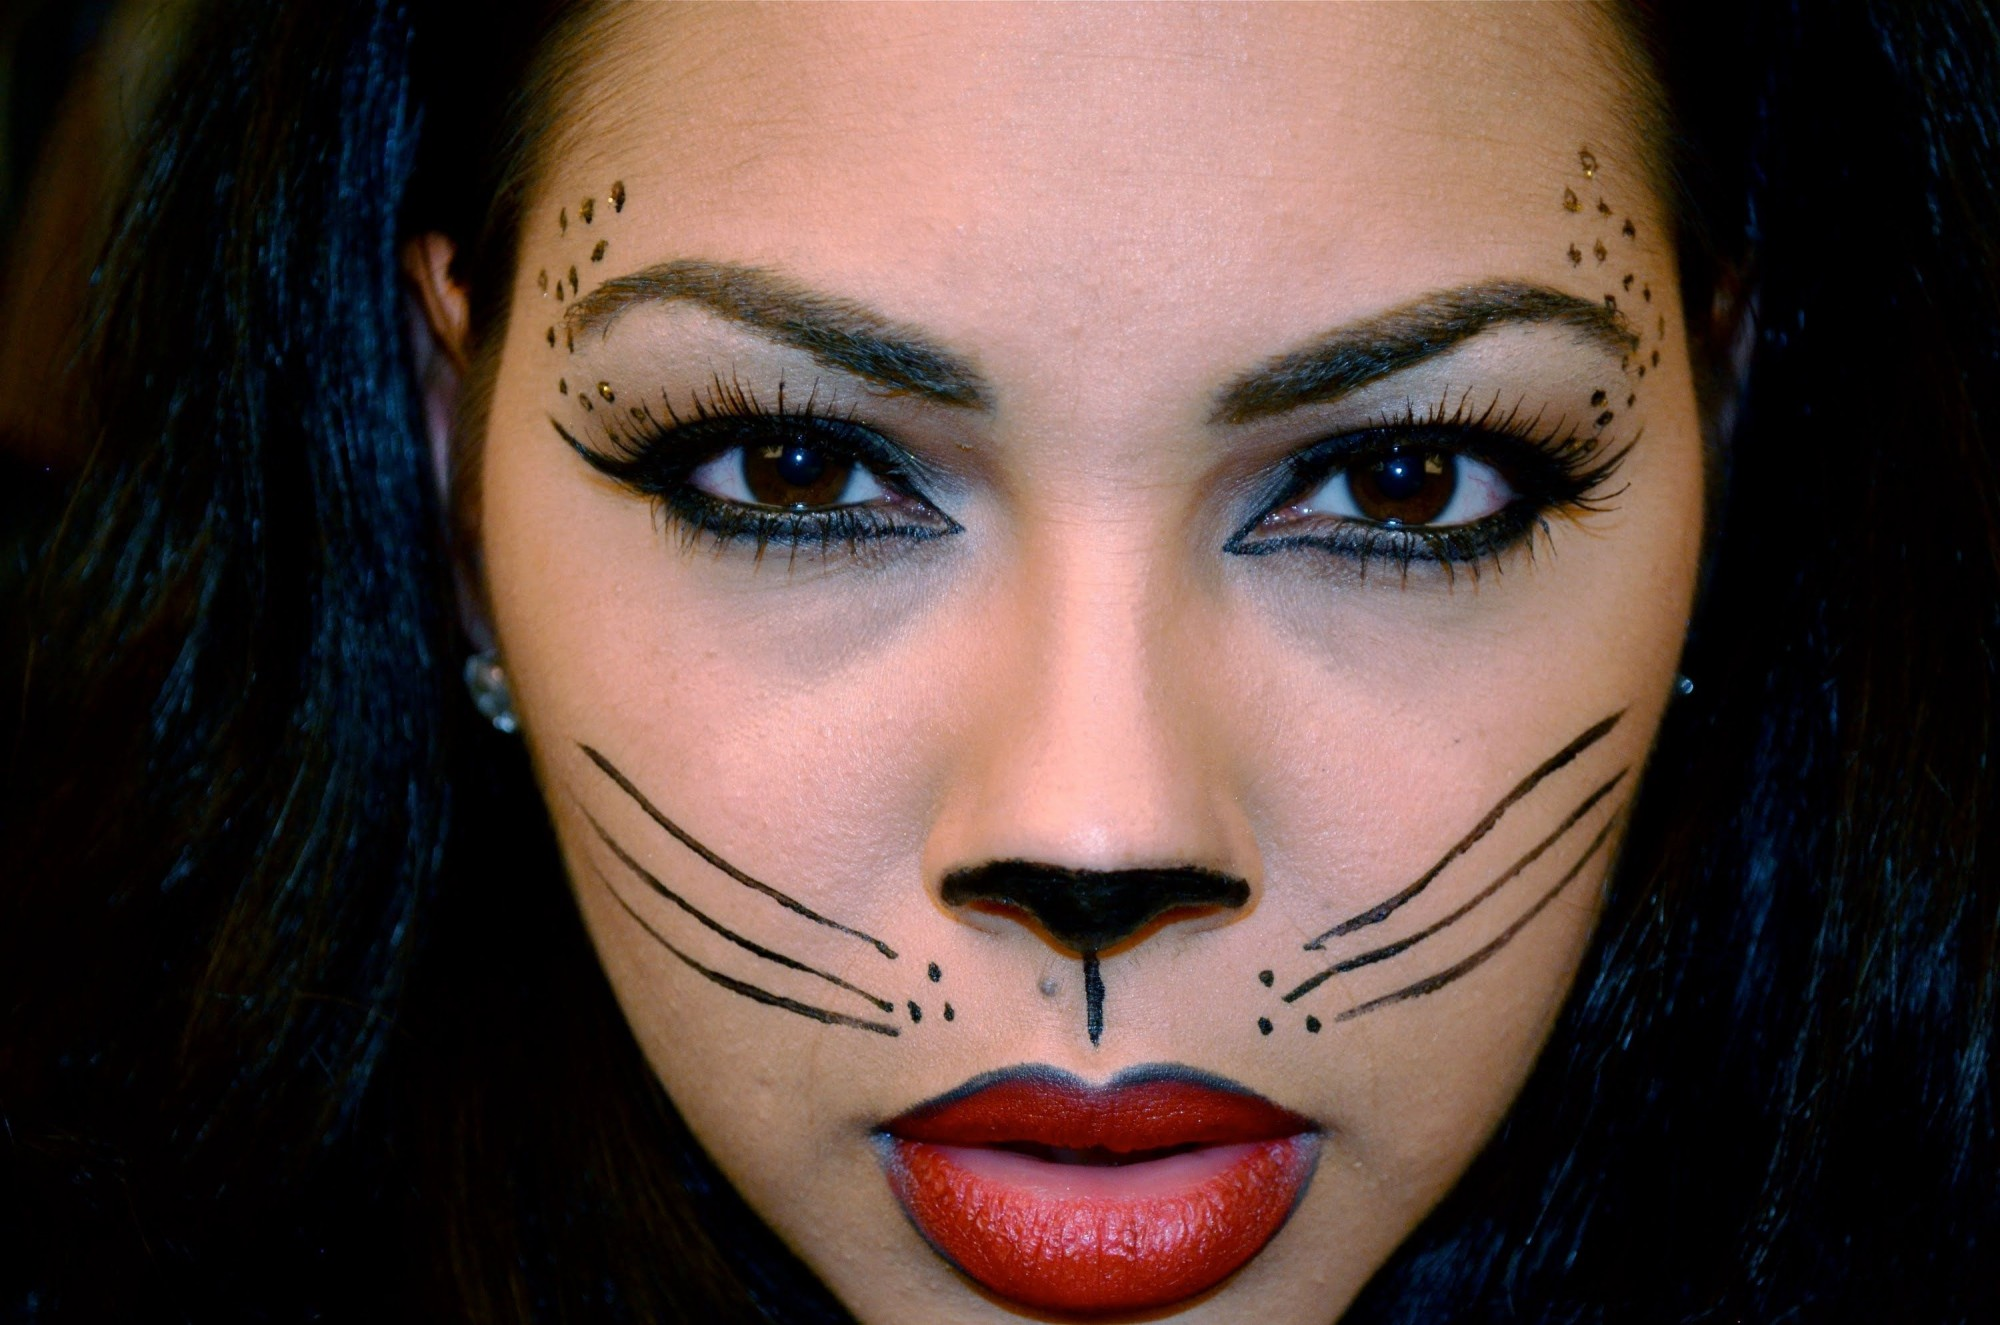 Halloween-Cat-New-Eye-Makeup-with-Black-Hair-Color-2015-2000x1325